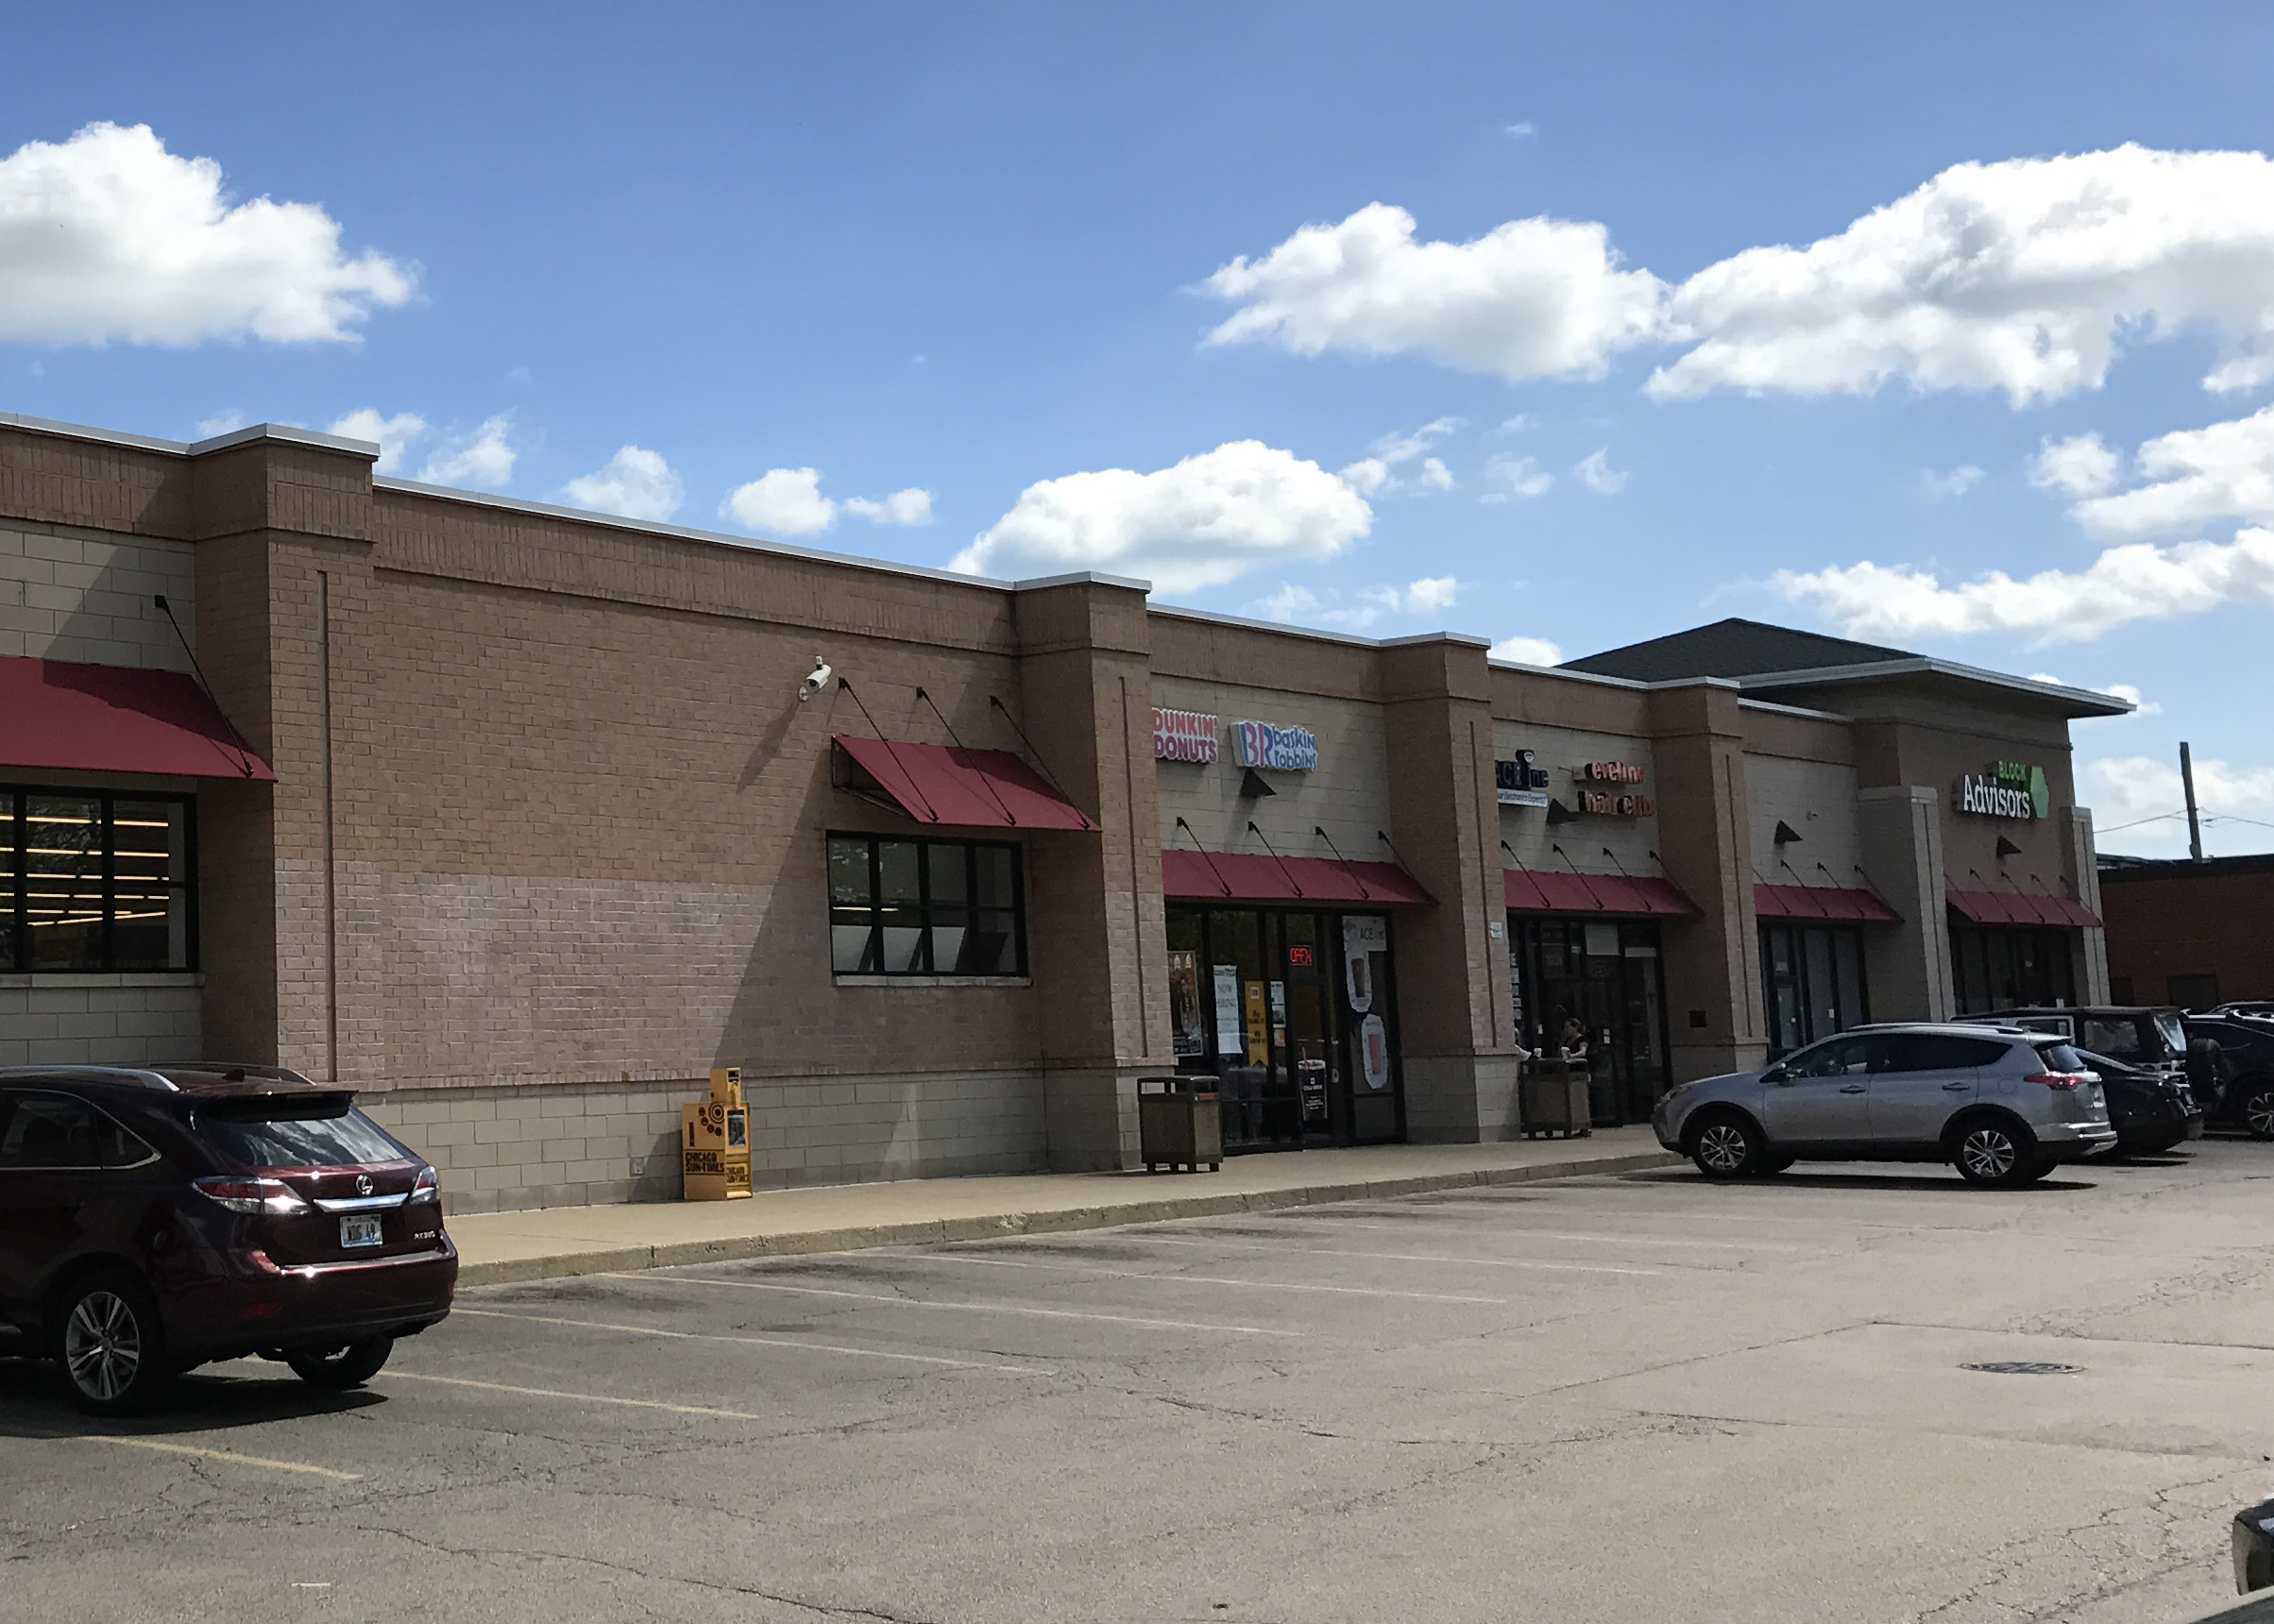 two storefronts for rent in cvs shadow anchor space